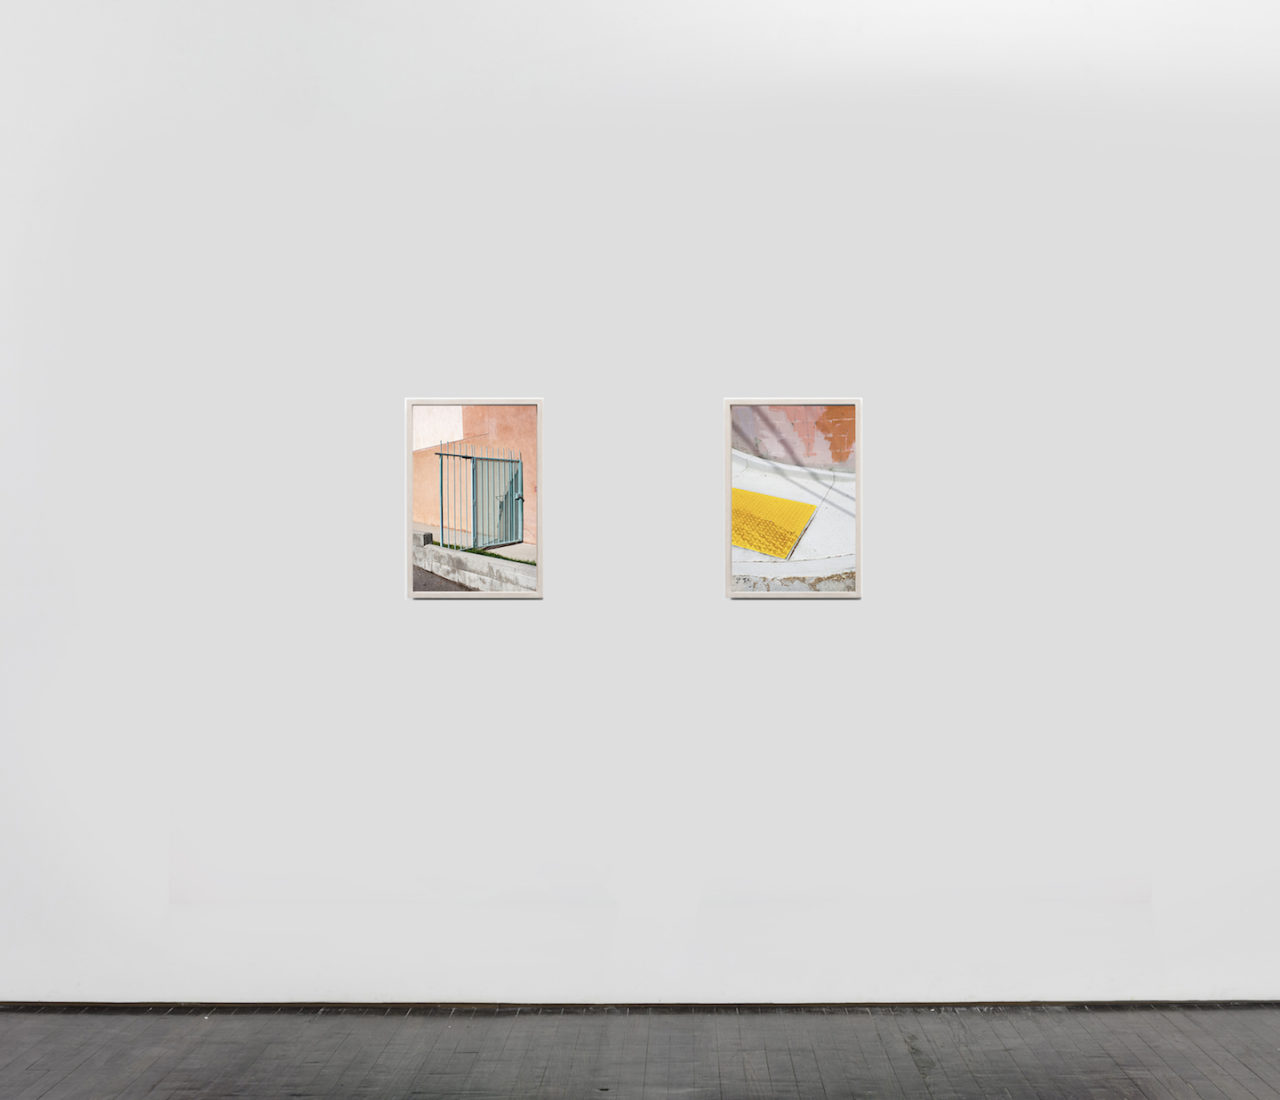 Noah's Ark | Installation view, Chris Wiley